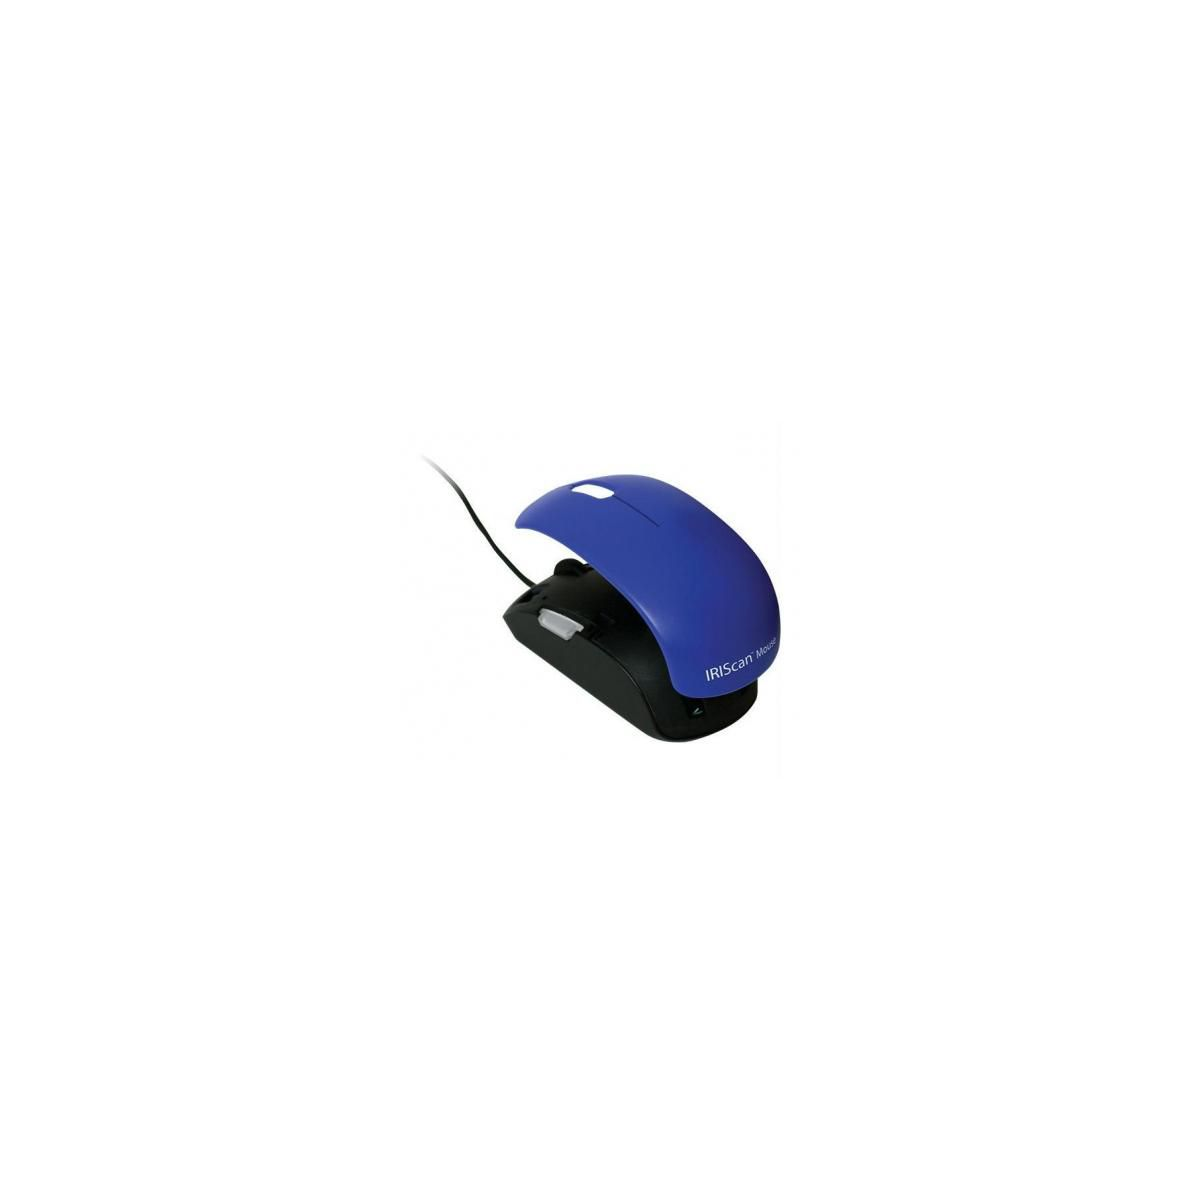 Scanner portable IRIS IriScan Mouse 2